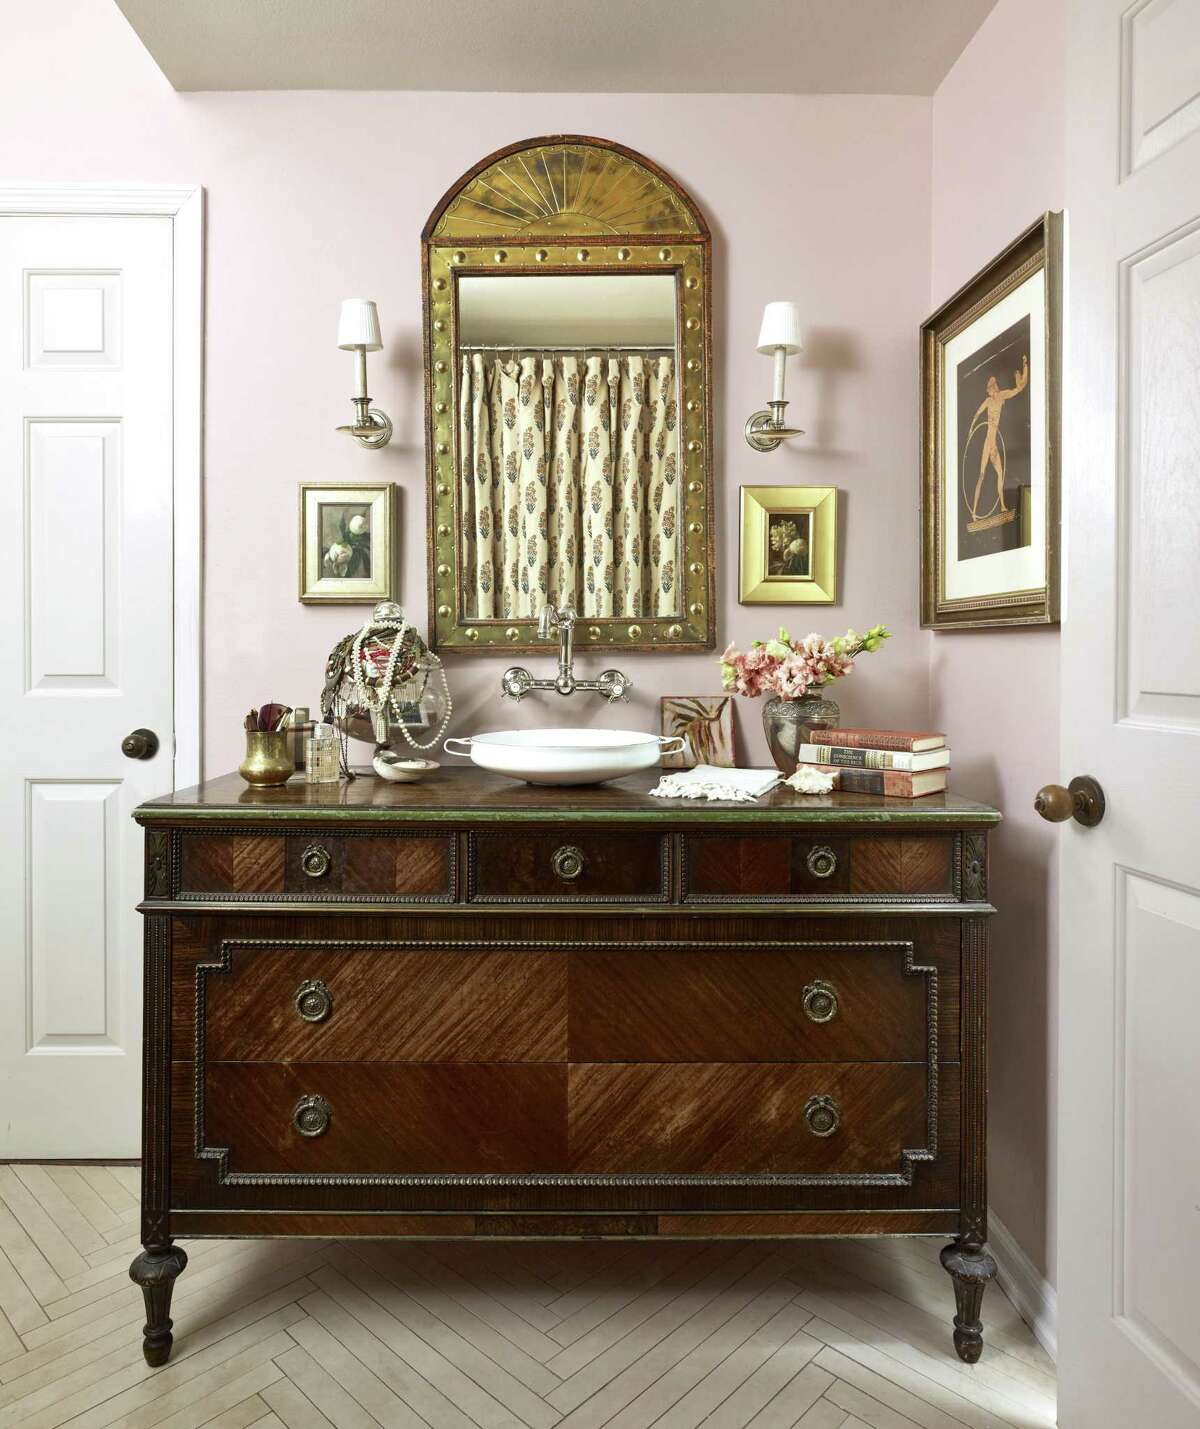 Custom bathroom sink vanities made from antique chests is a growing trend. This one, by Charleston, S.C., designer Alaina Ralphs, has a wild surprise: the shapely sink is actually a paella pan.